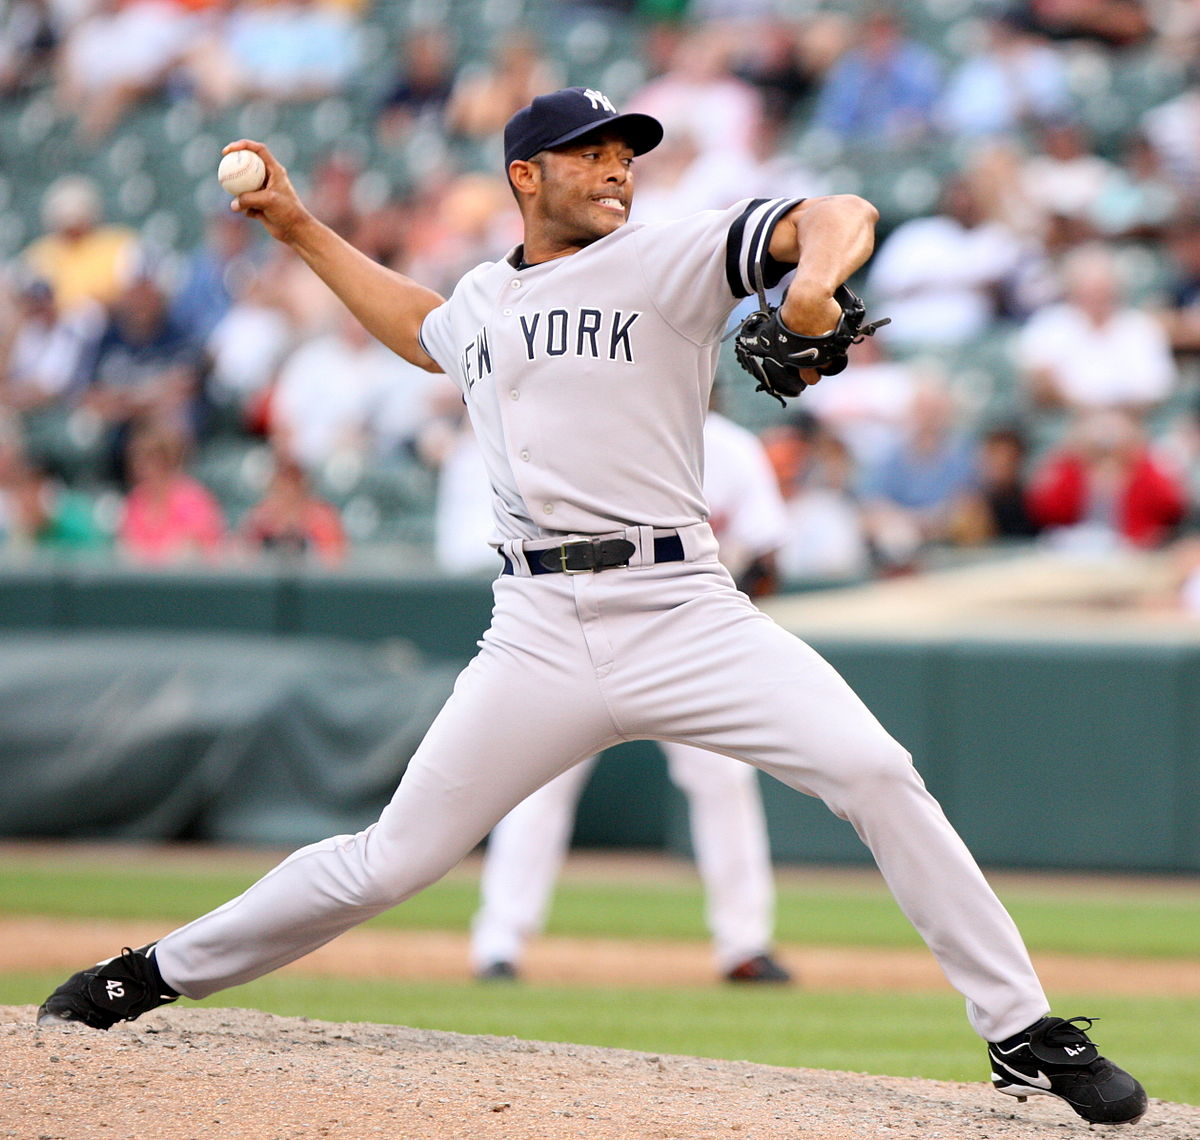 Picture of Mariano Rivera pitching against the Baltimore Orioles in 2007.